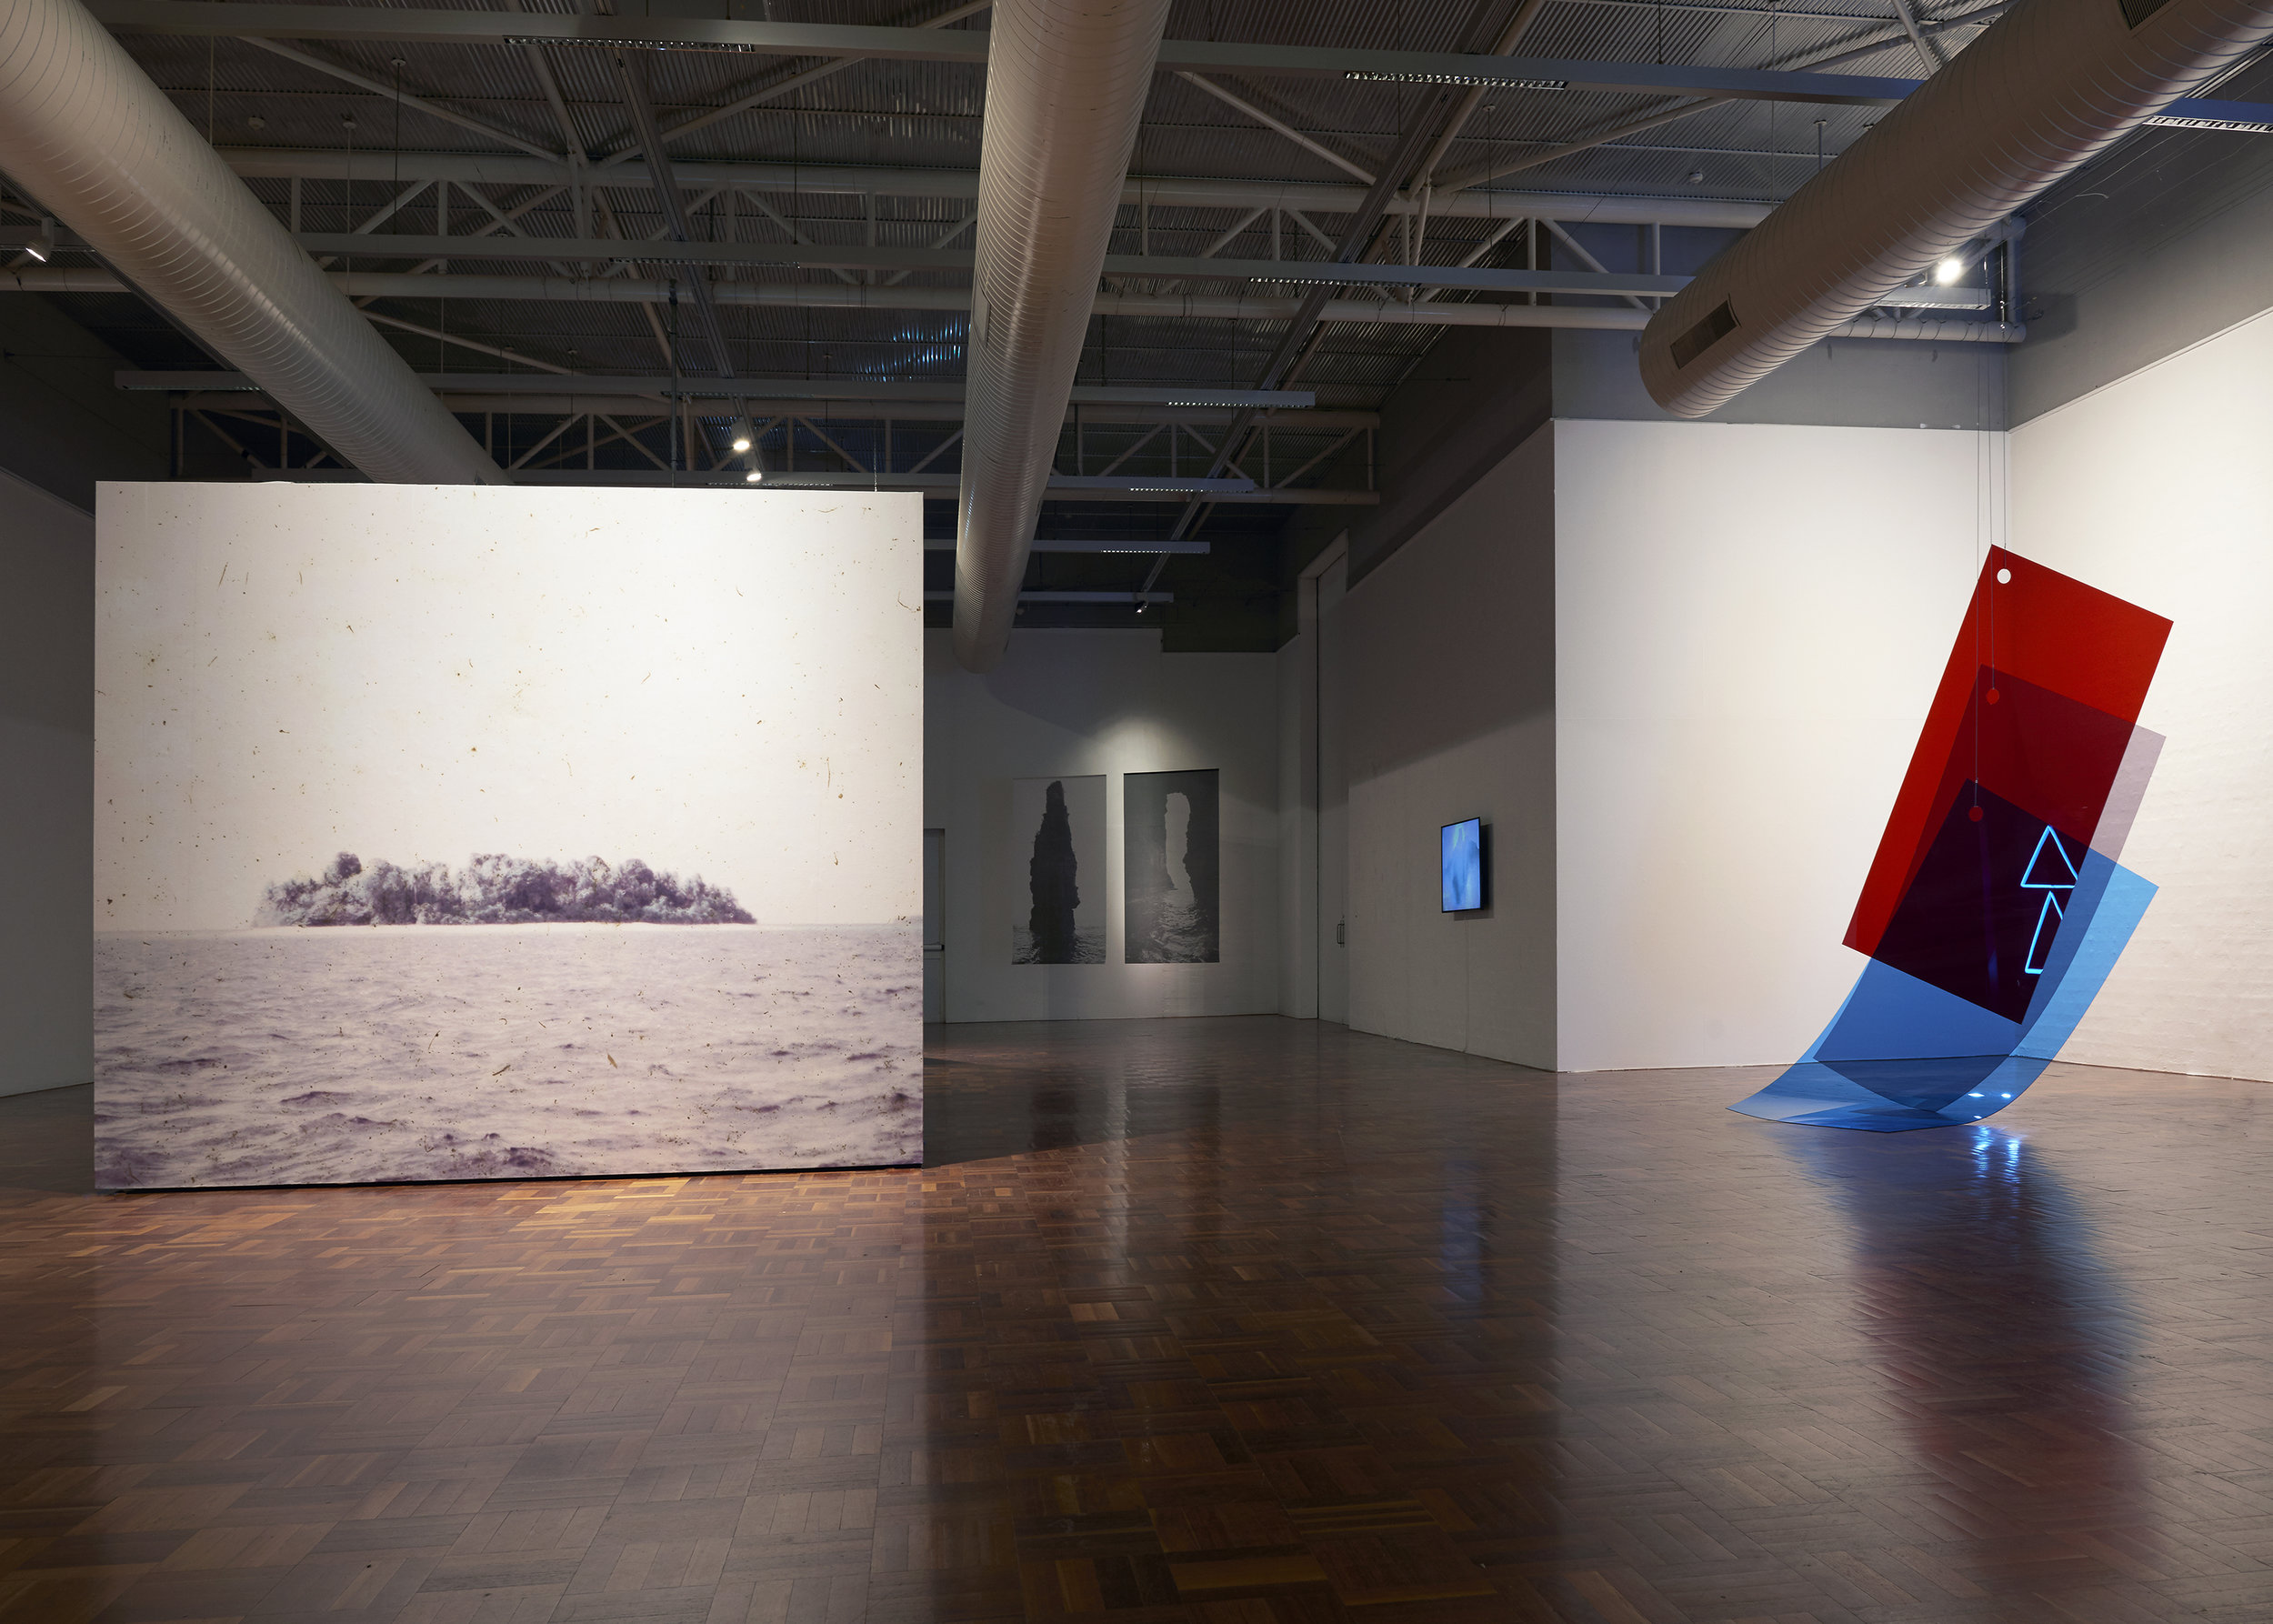 Vanishing Point , exhibition installation view, ANU School of Art & Design Gallery, Canberra, 16 May – 14 June 2019; photo: Ellen Dahl